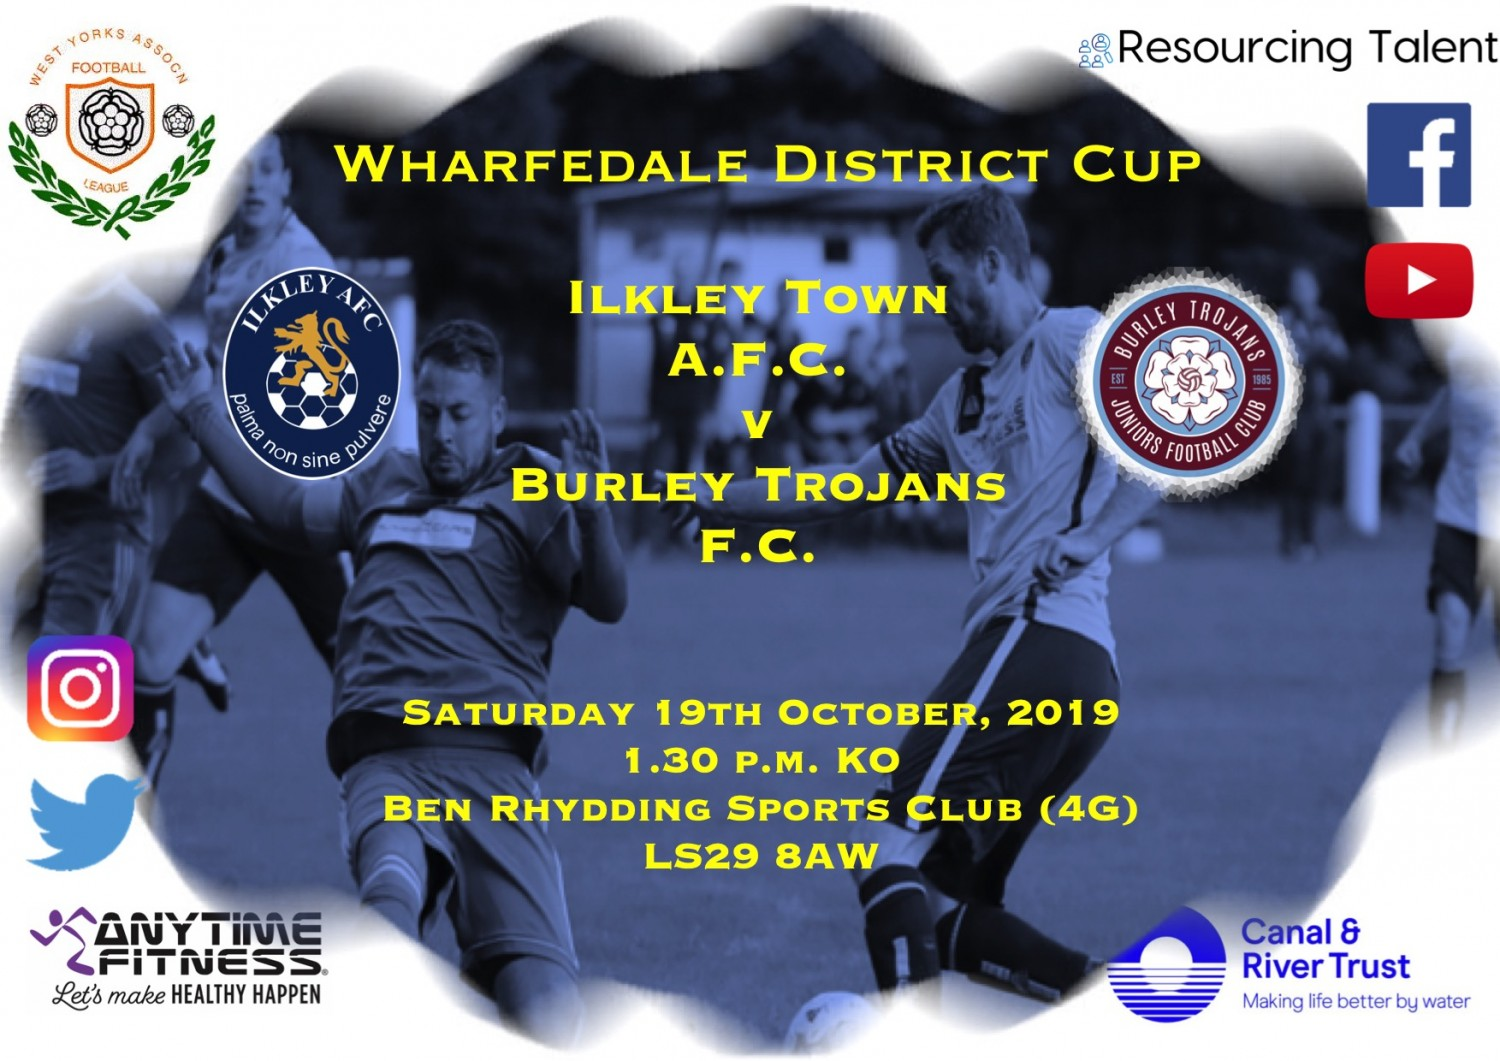 Match Preview: Ilkley Town AFC v Burley Trojans F.C.